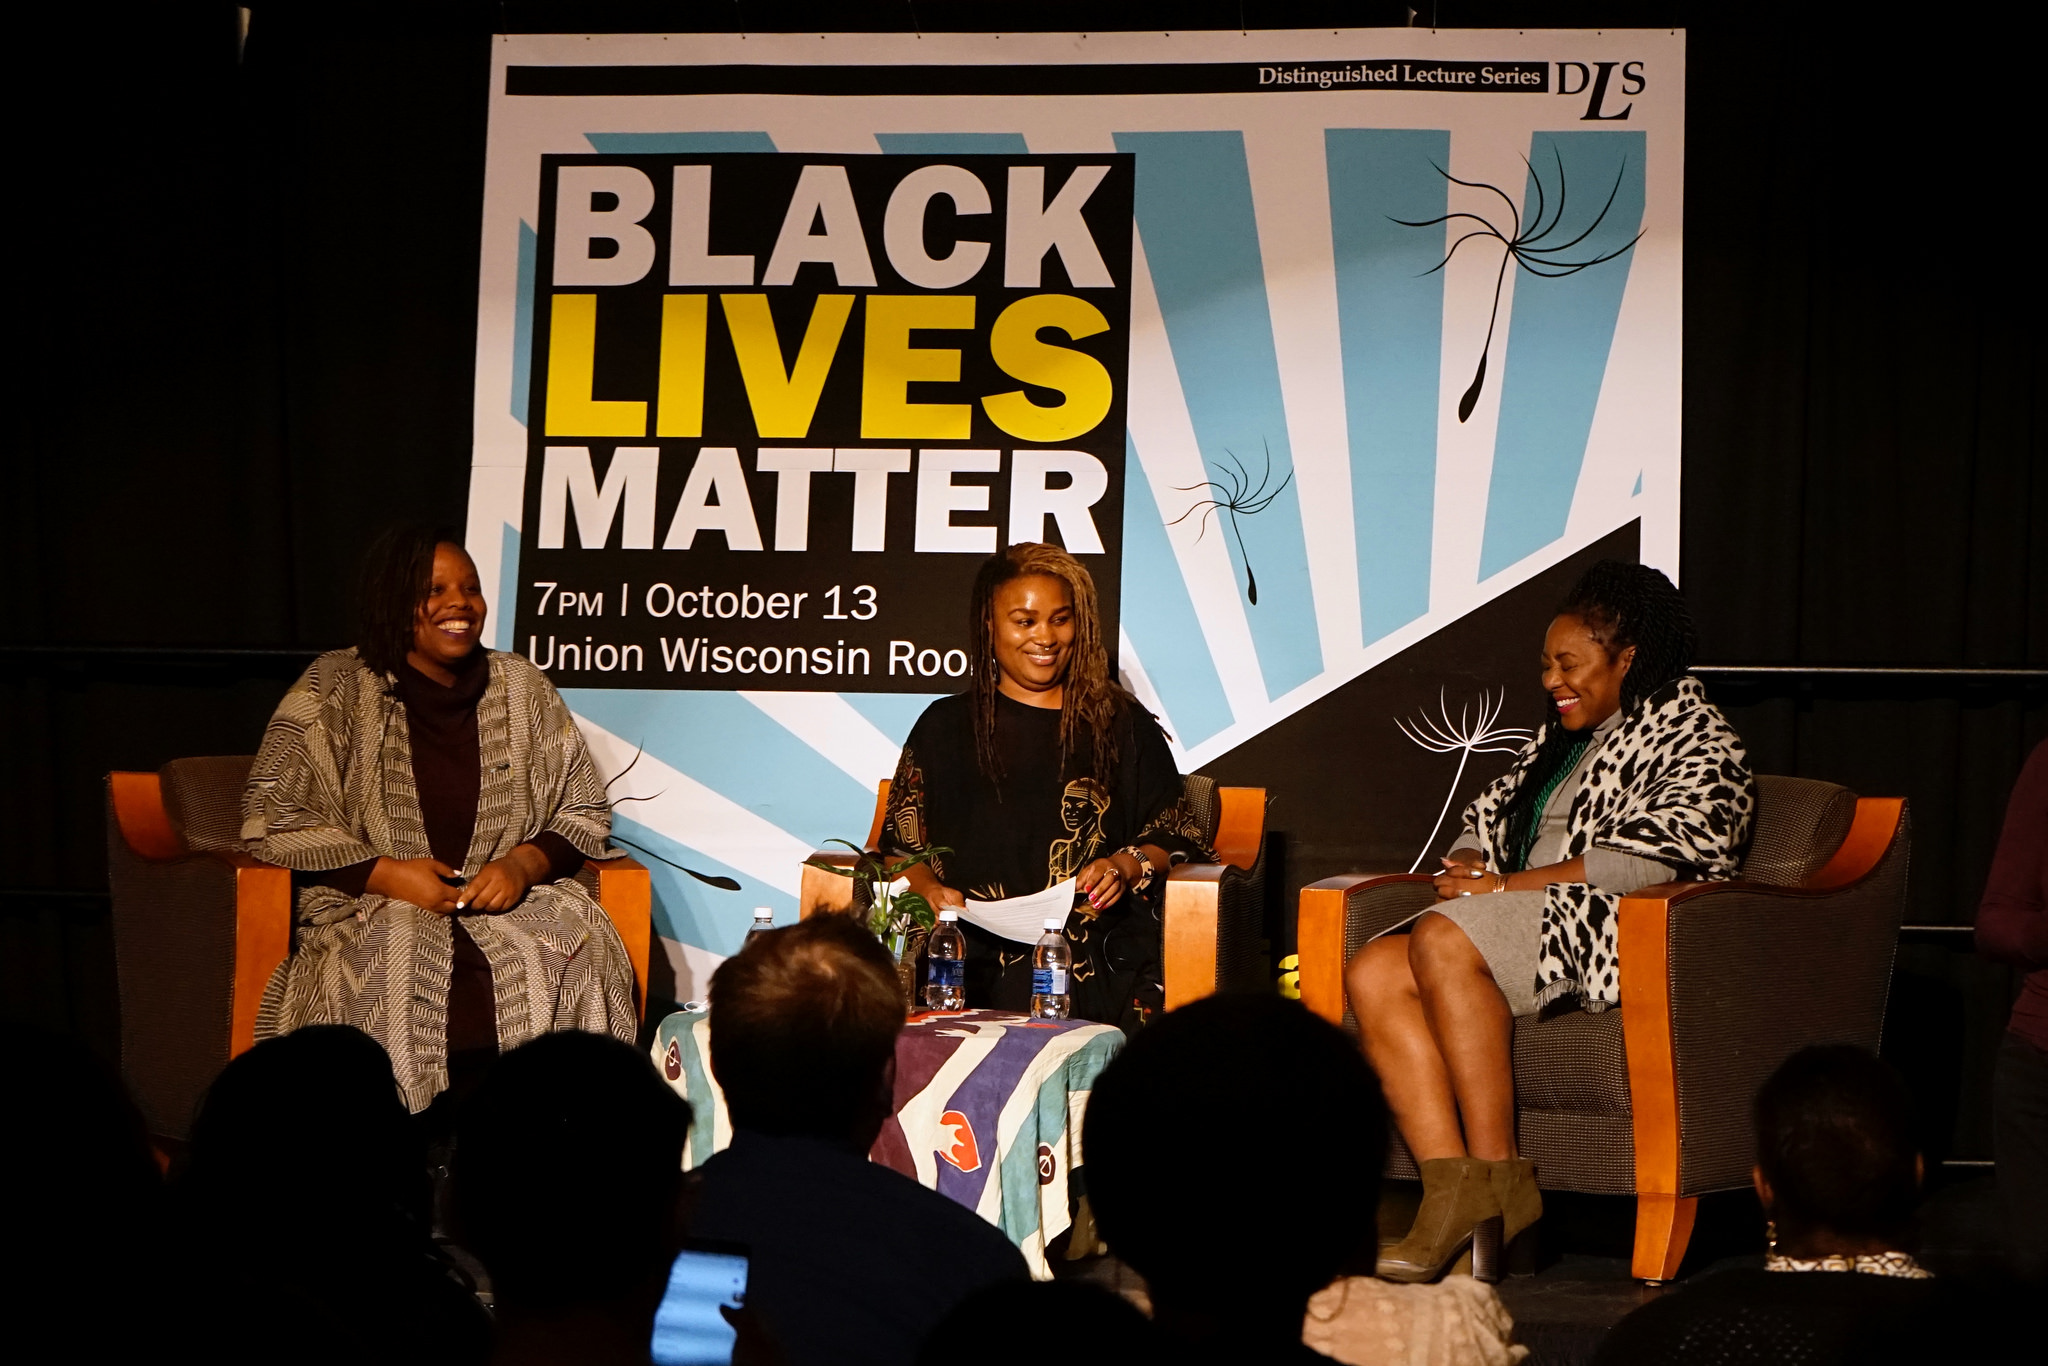 Co-founders of Black Lives Matter Patrisse Cullors (left) and Alicia Garza answered questions from the audience and moderator Charmaine Lang (center). (Photo by Adam Carr)